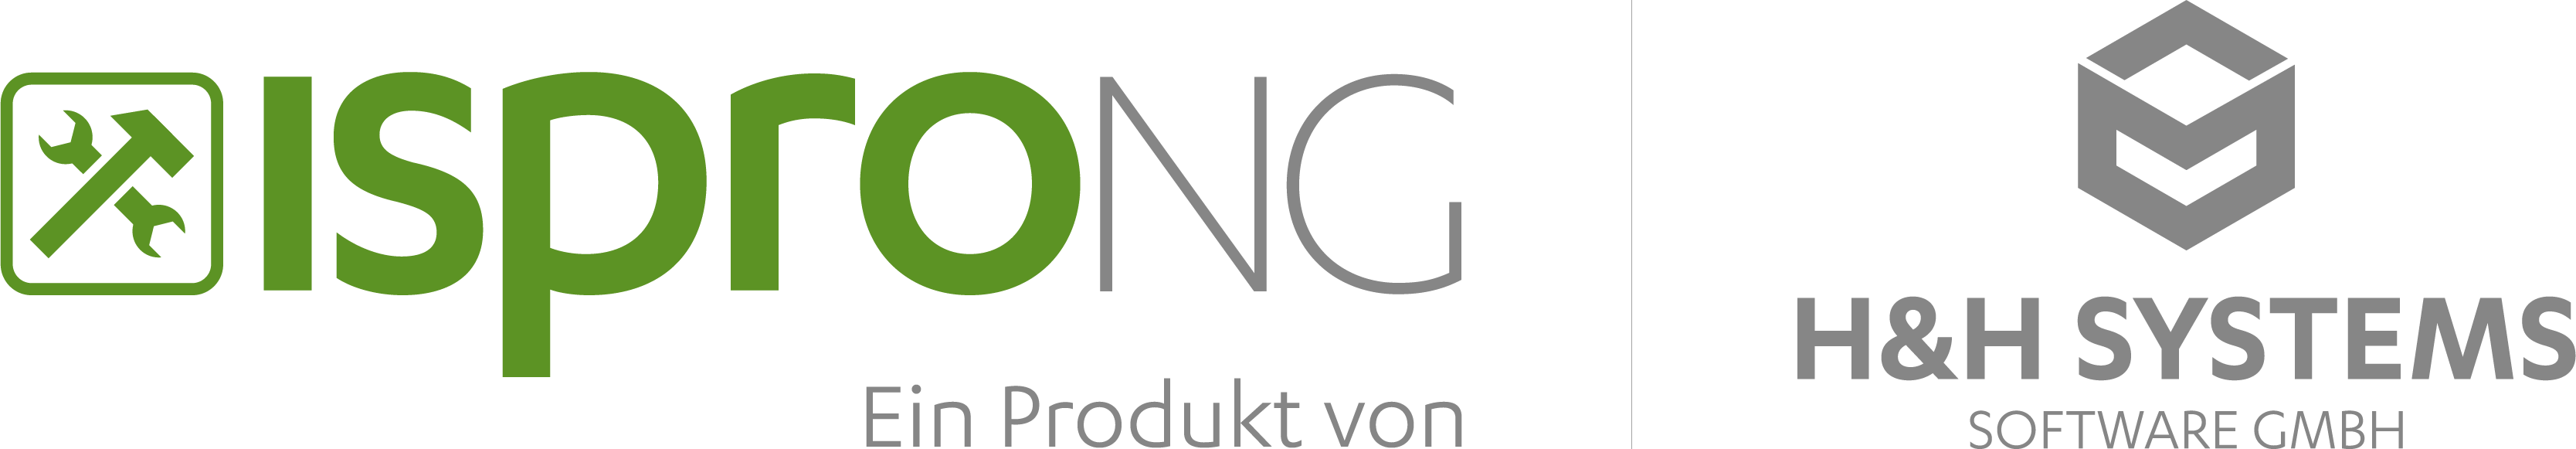 Logo-Kombi isproNG und H&H Systems